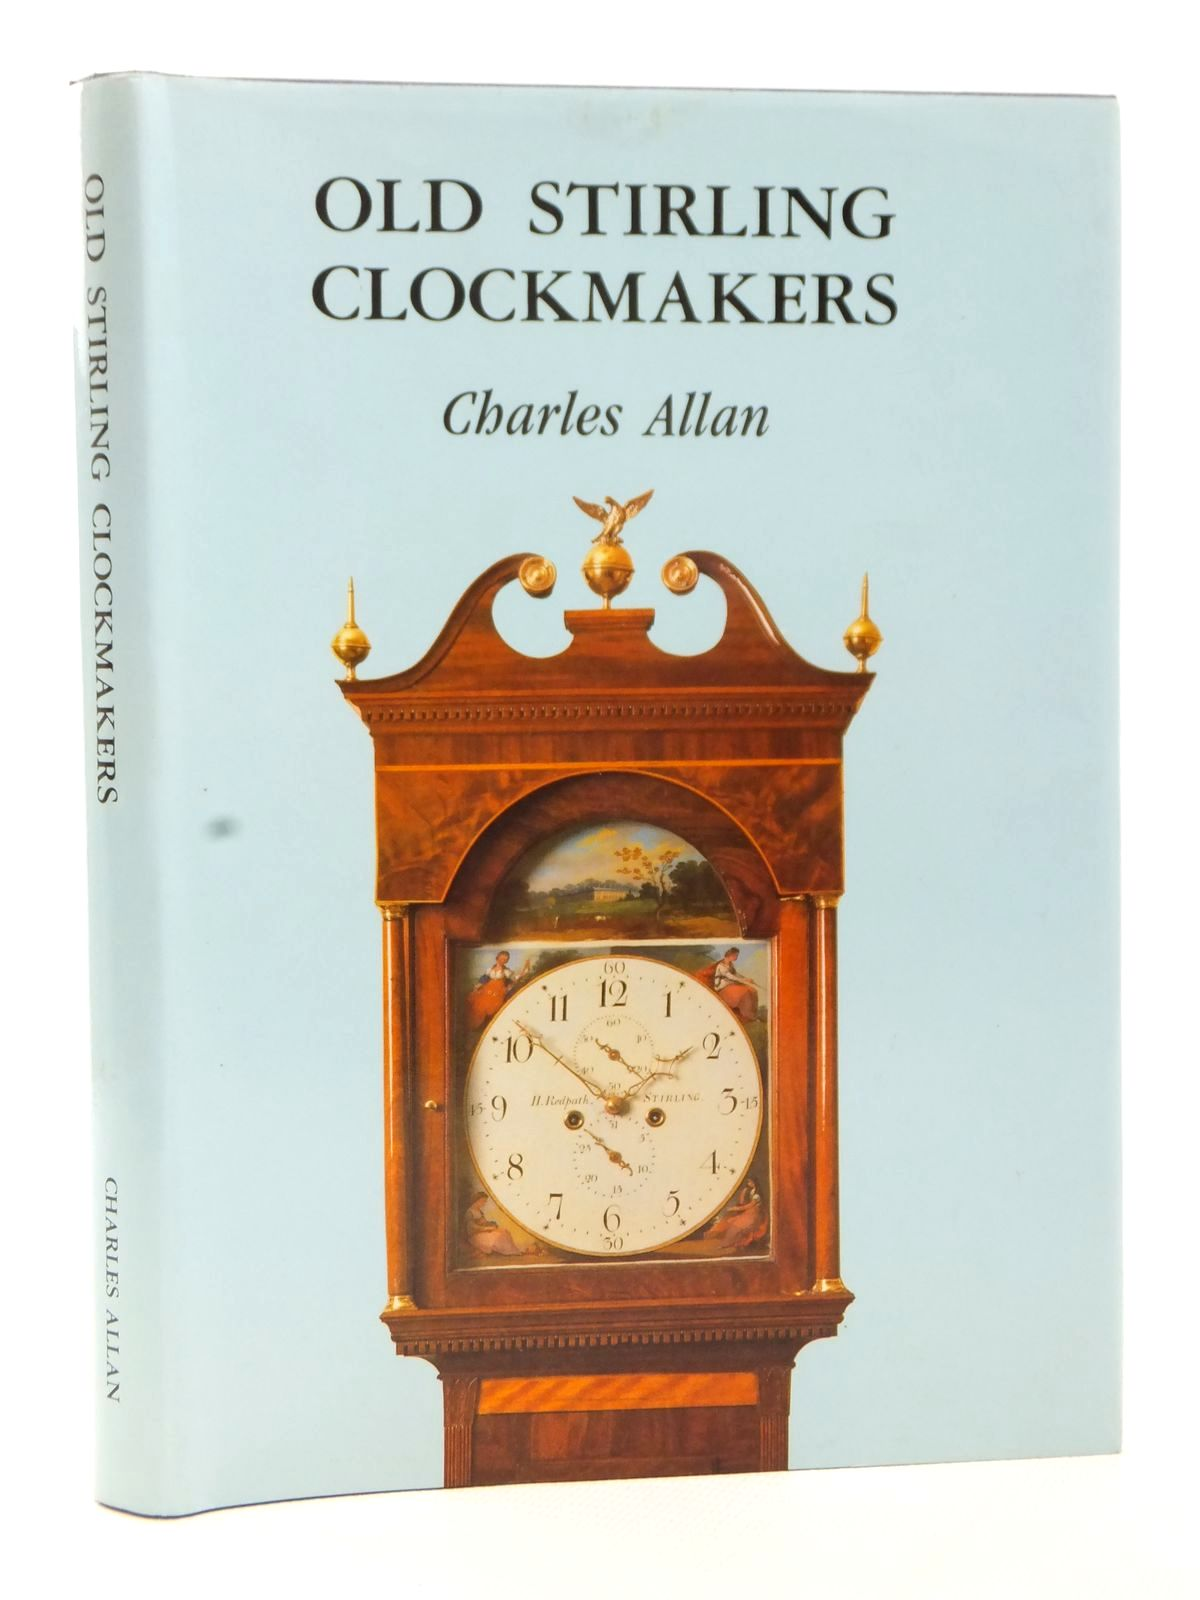 Old Stirling Clockmakers